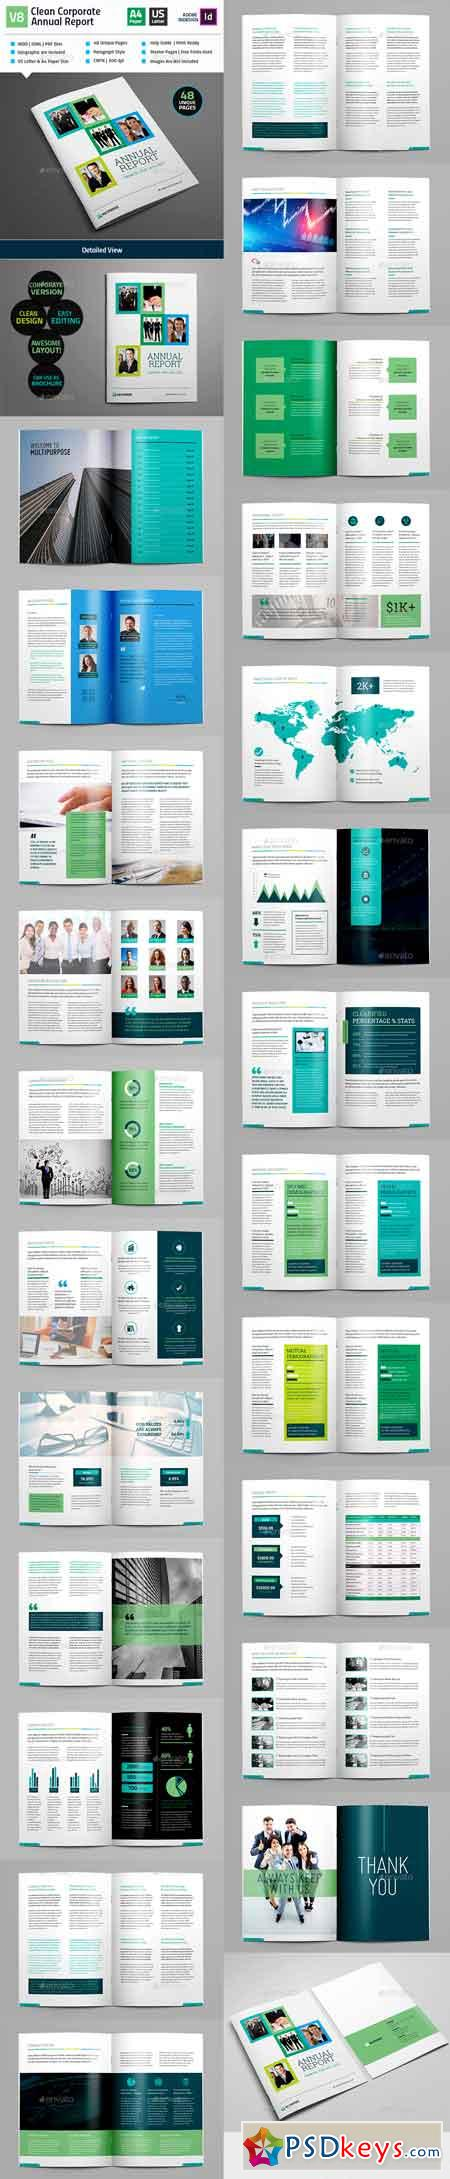 Clean Annual Report Brochure_Indesign Layout_V8 16213929